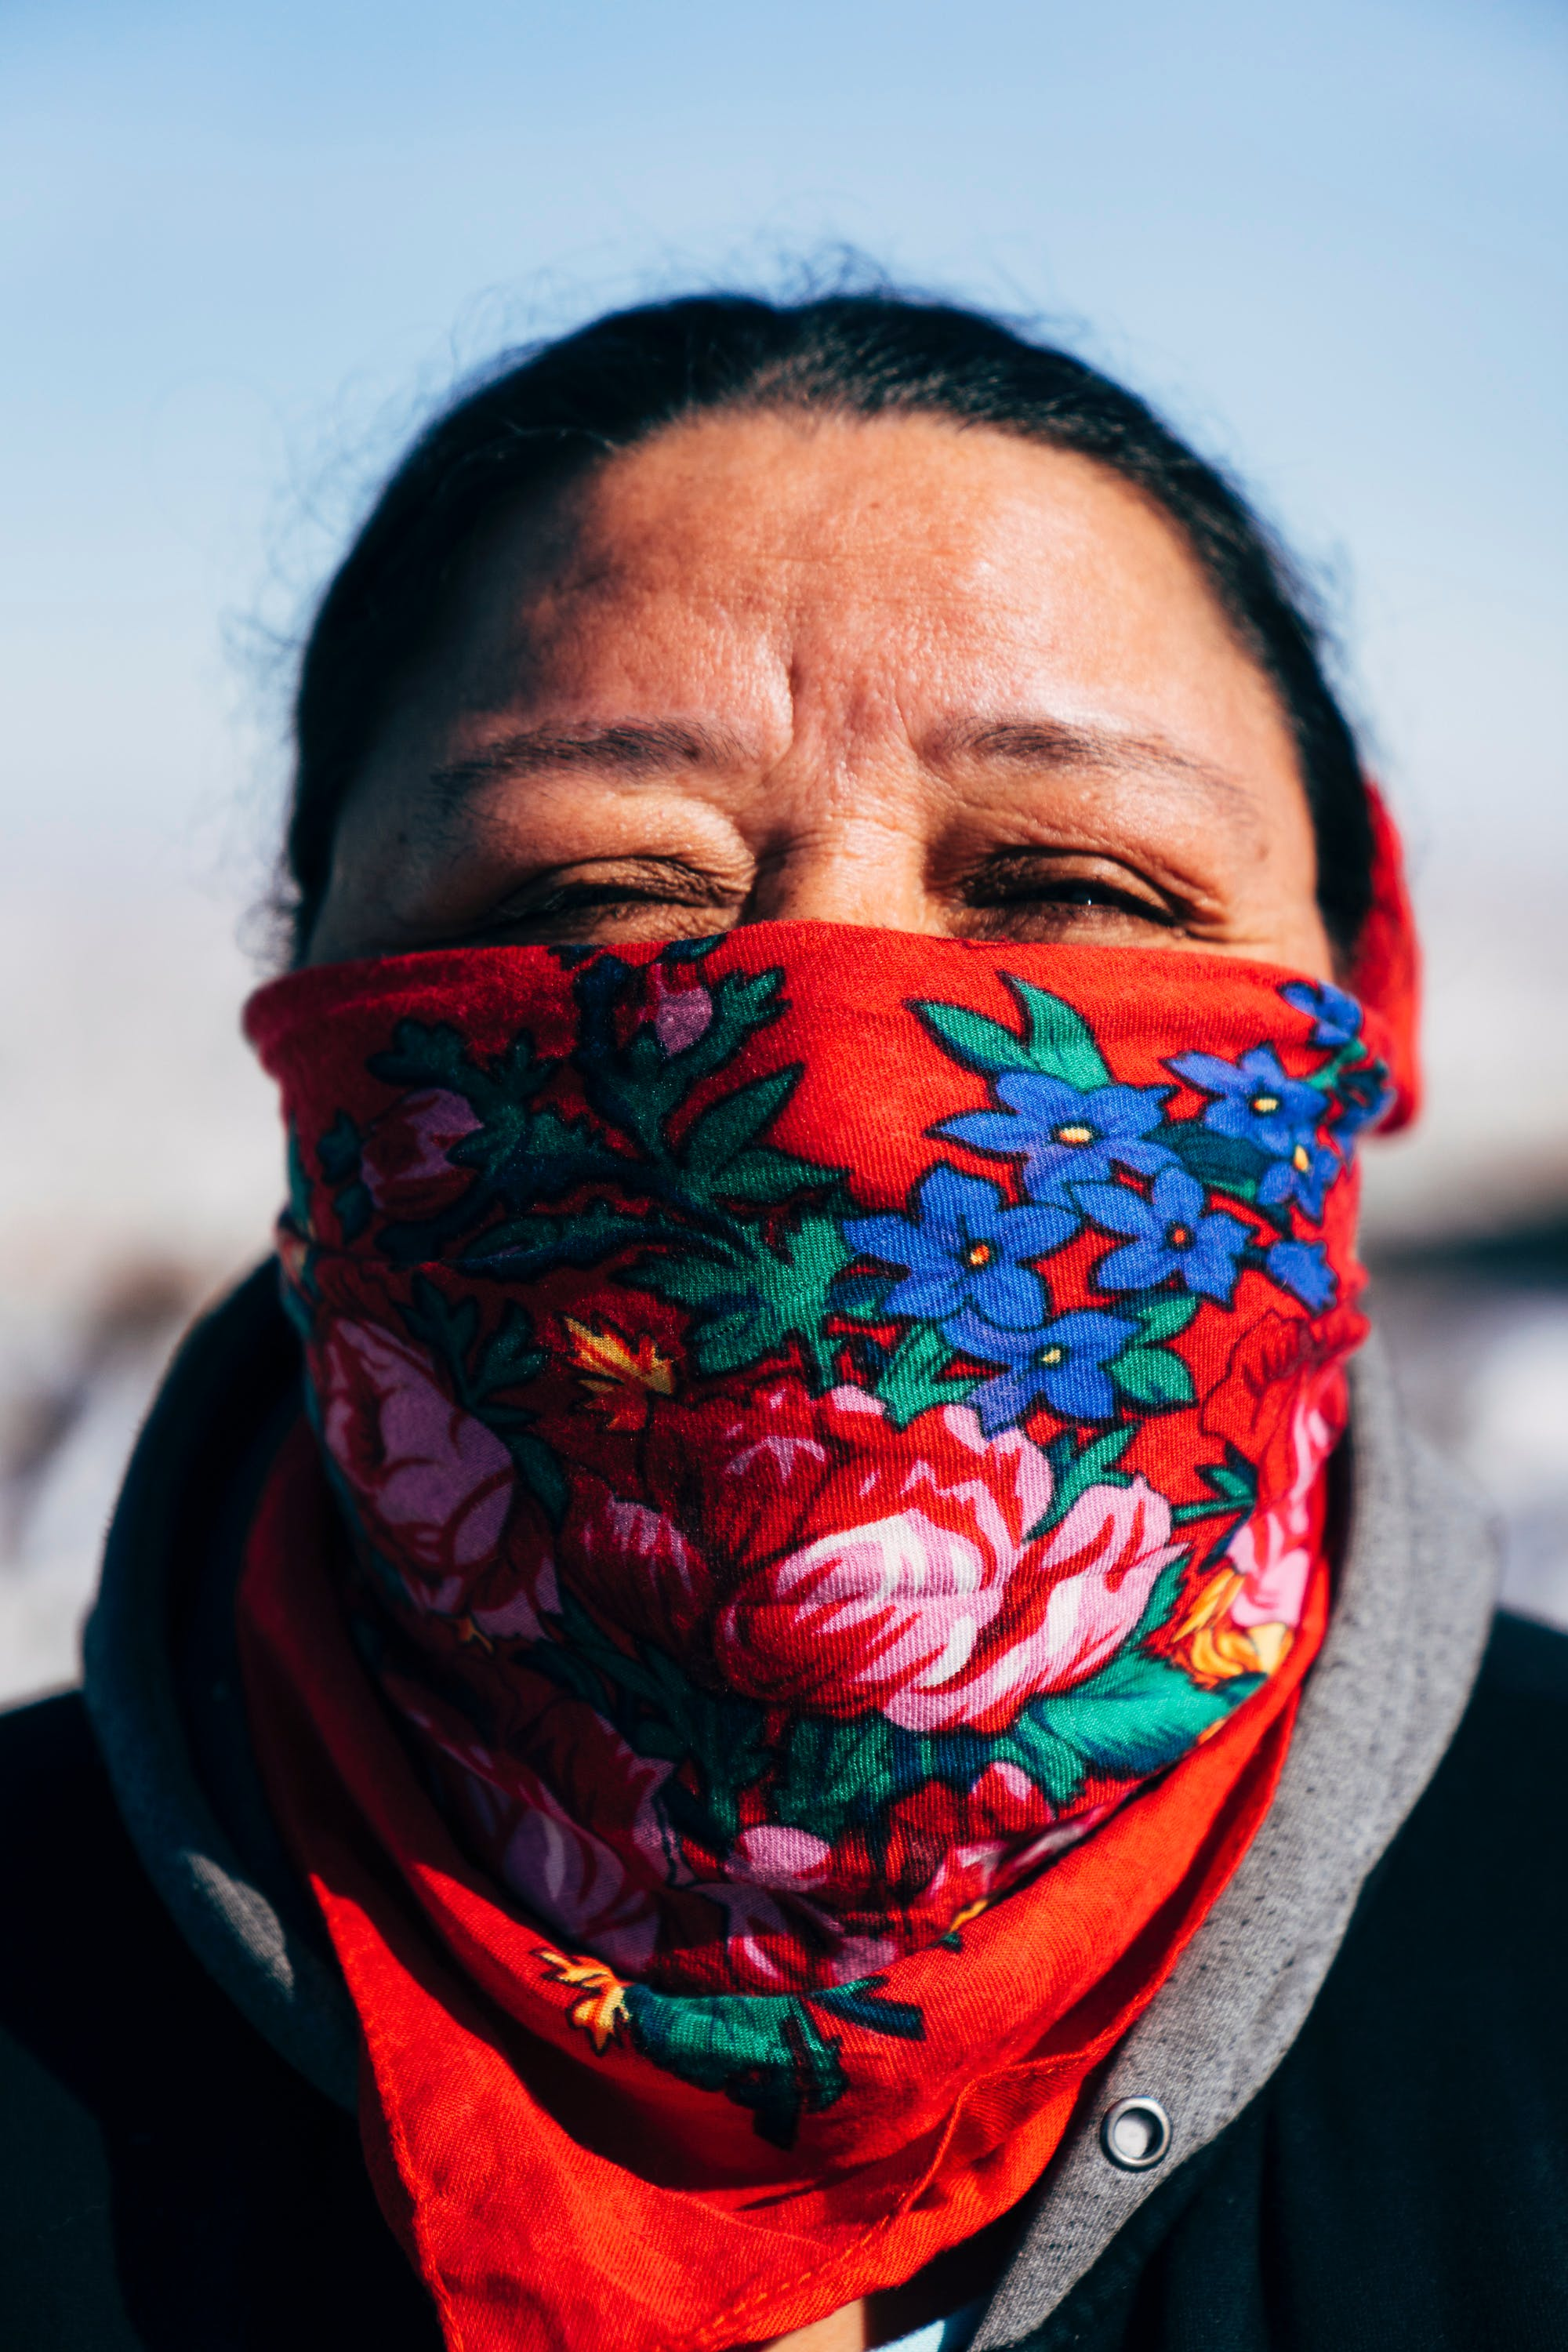 The Trap House-Busting Vigilante of Pine Ridge Reservation